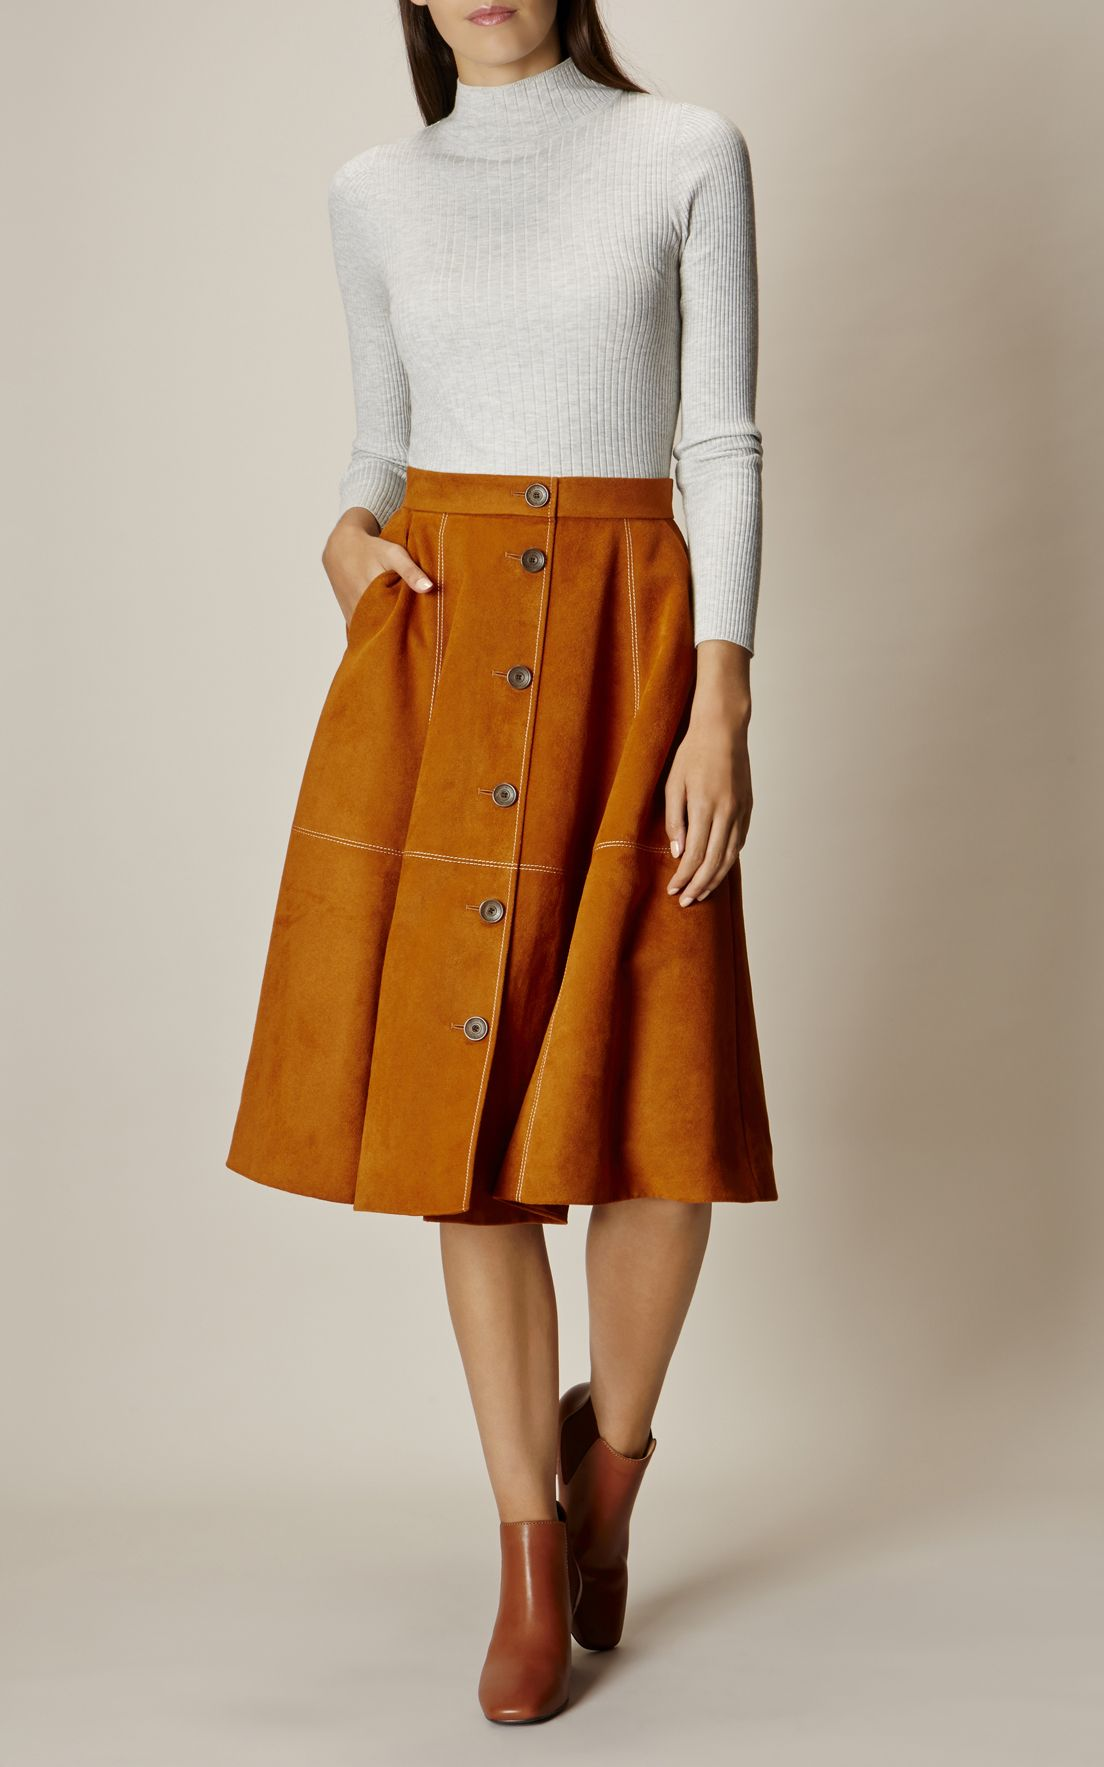 fe6f8eda6 Karen Millen, BUTTON-FRONT FAUX-SUEDE SKIRT Tan | Sewing in 2019 ...